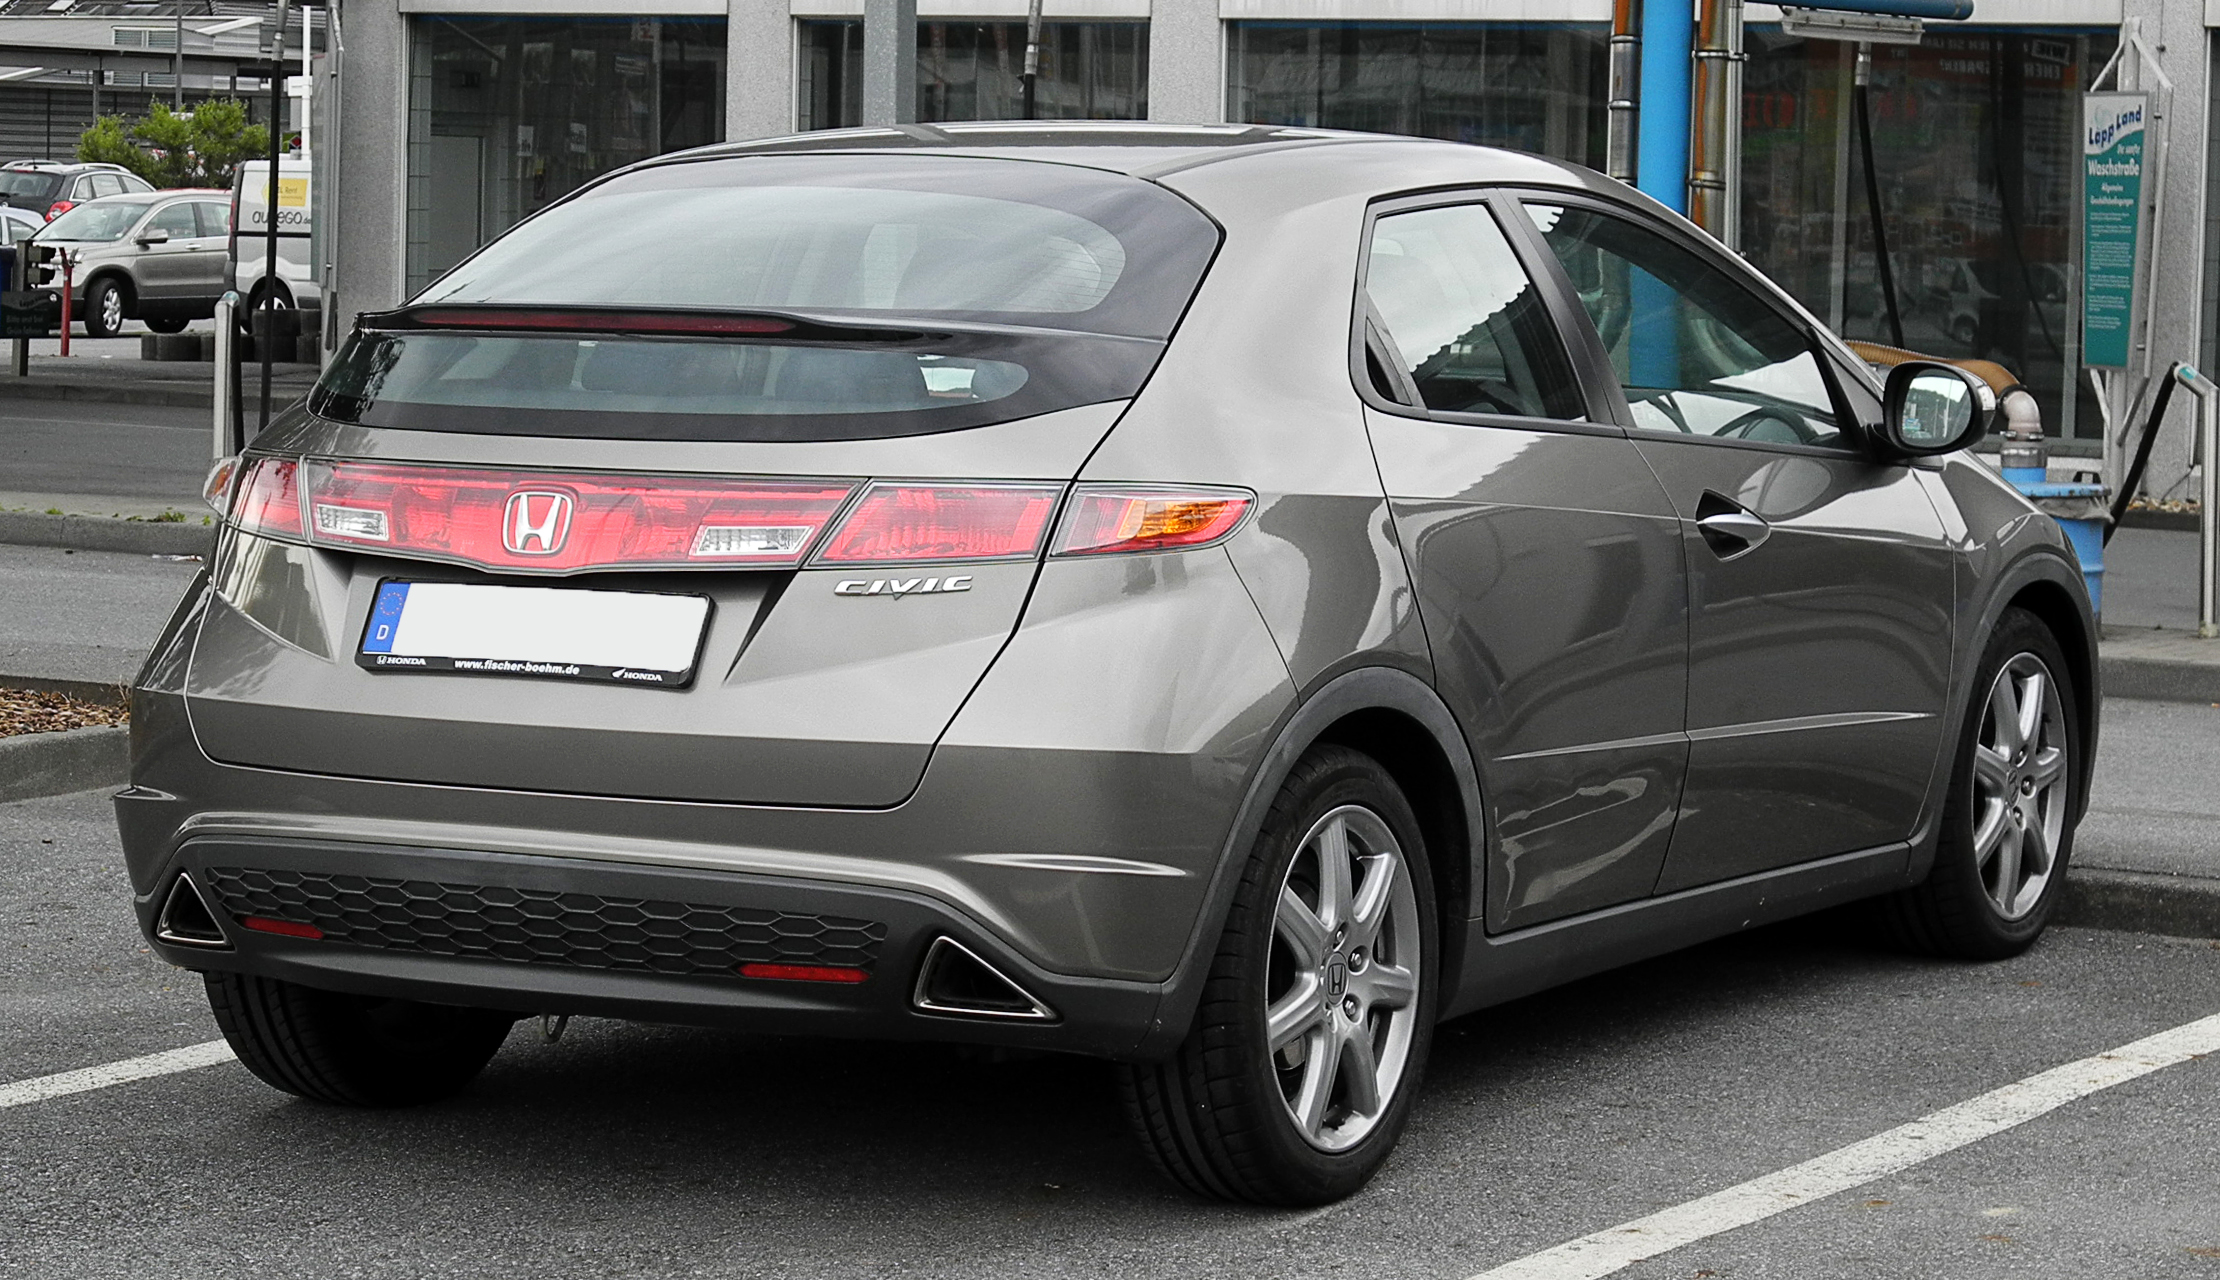 honda civic viii 2009 wallpaper #3